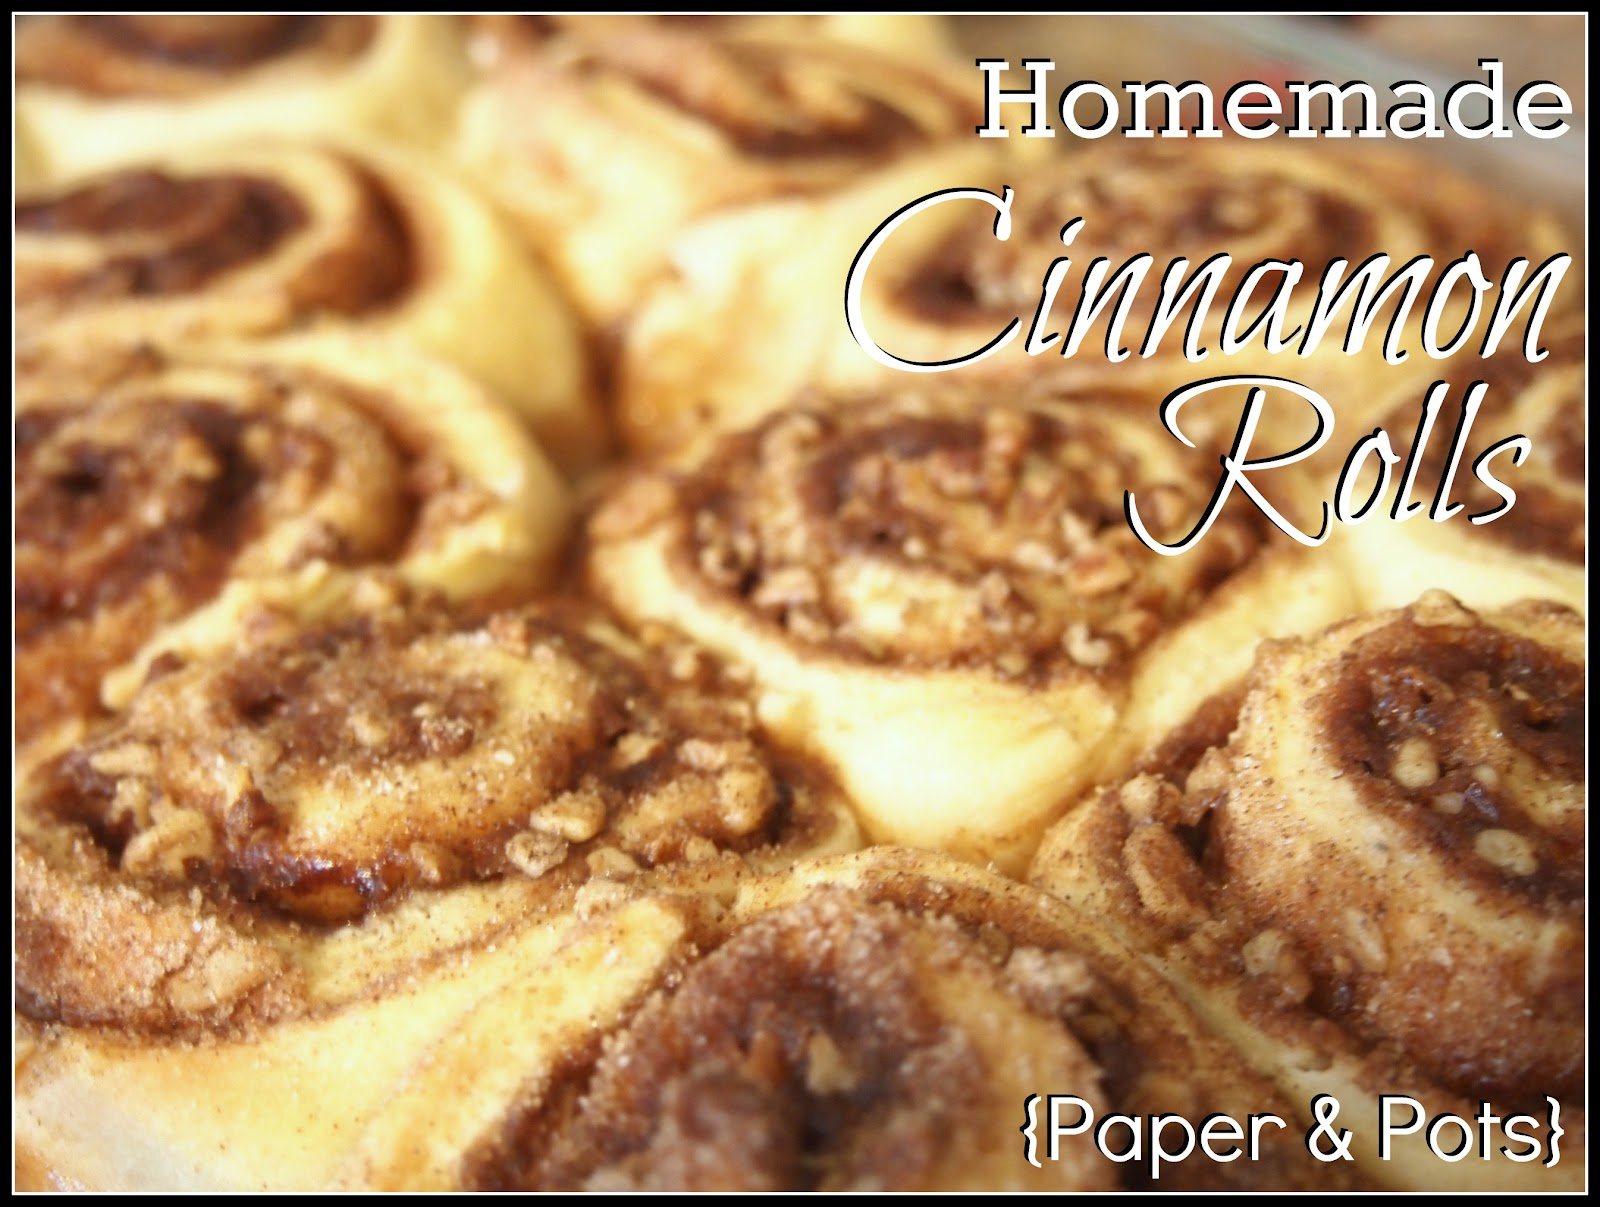 Paper & Pots: Homemade Cinnamon Rolls ...just like Cinnabon!